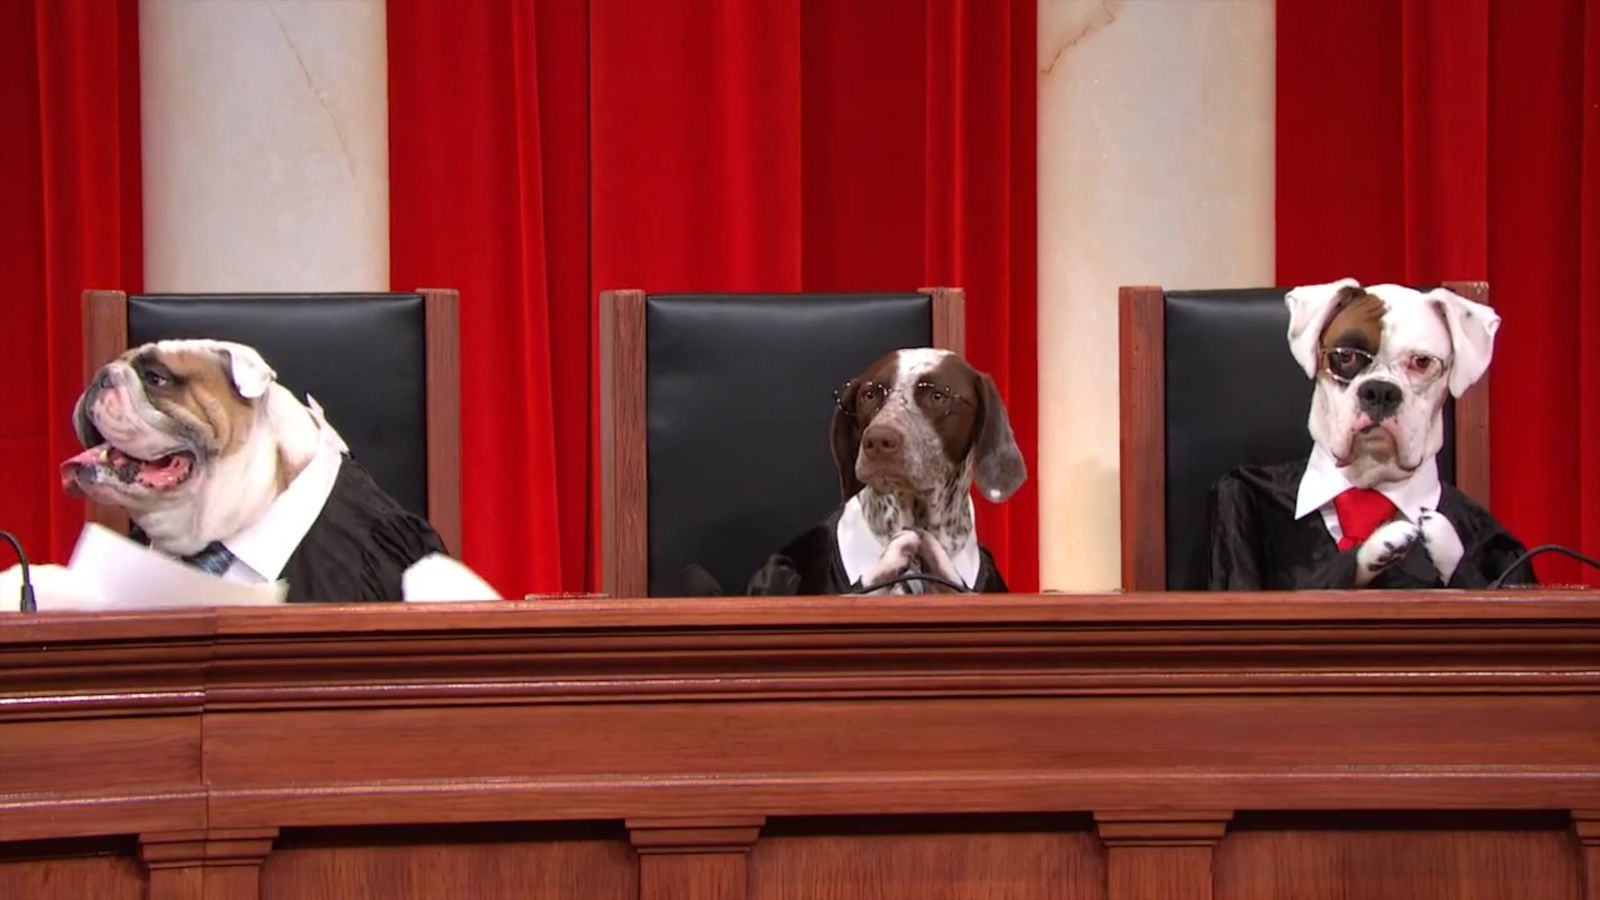 We remixed John Oliver's all-dog Supreme Court footage ...